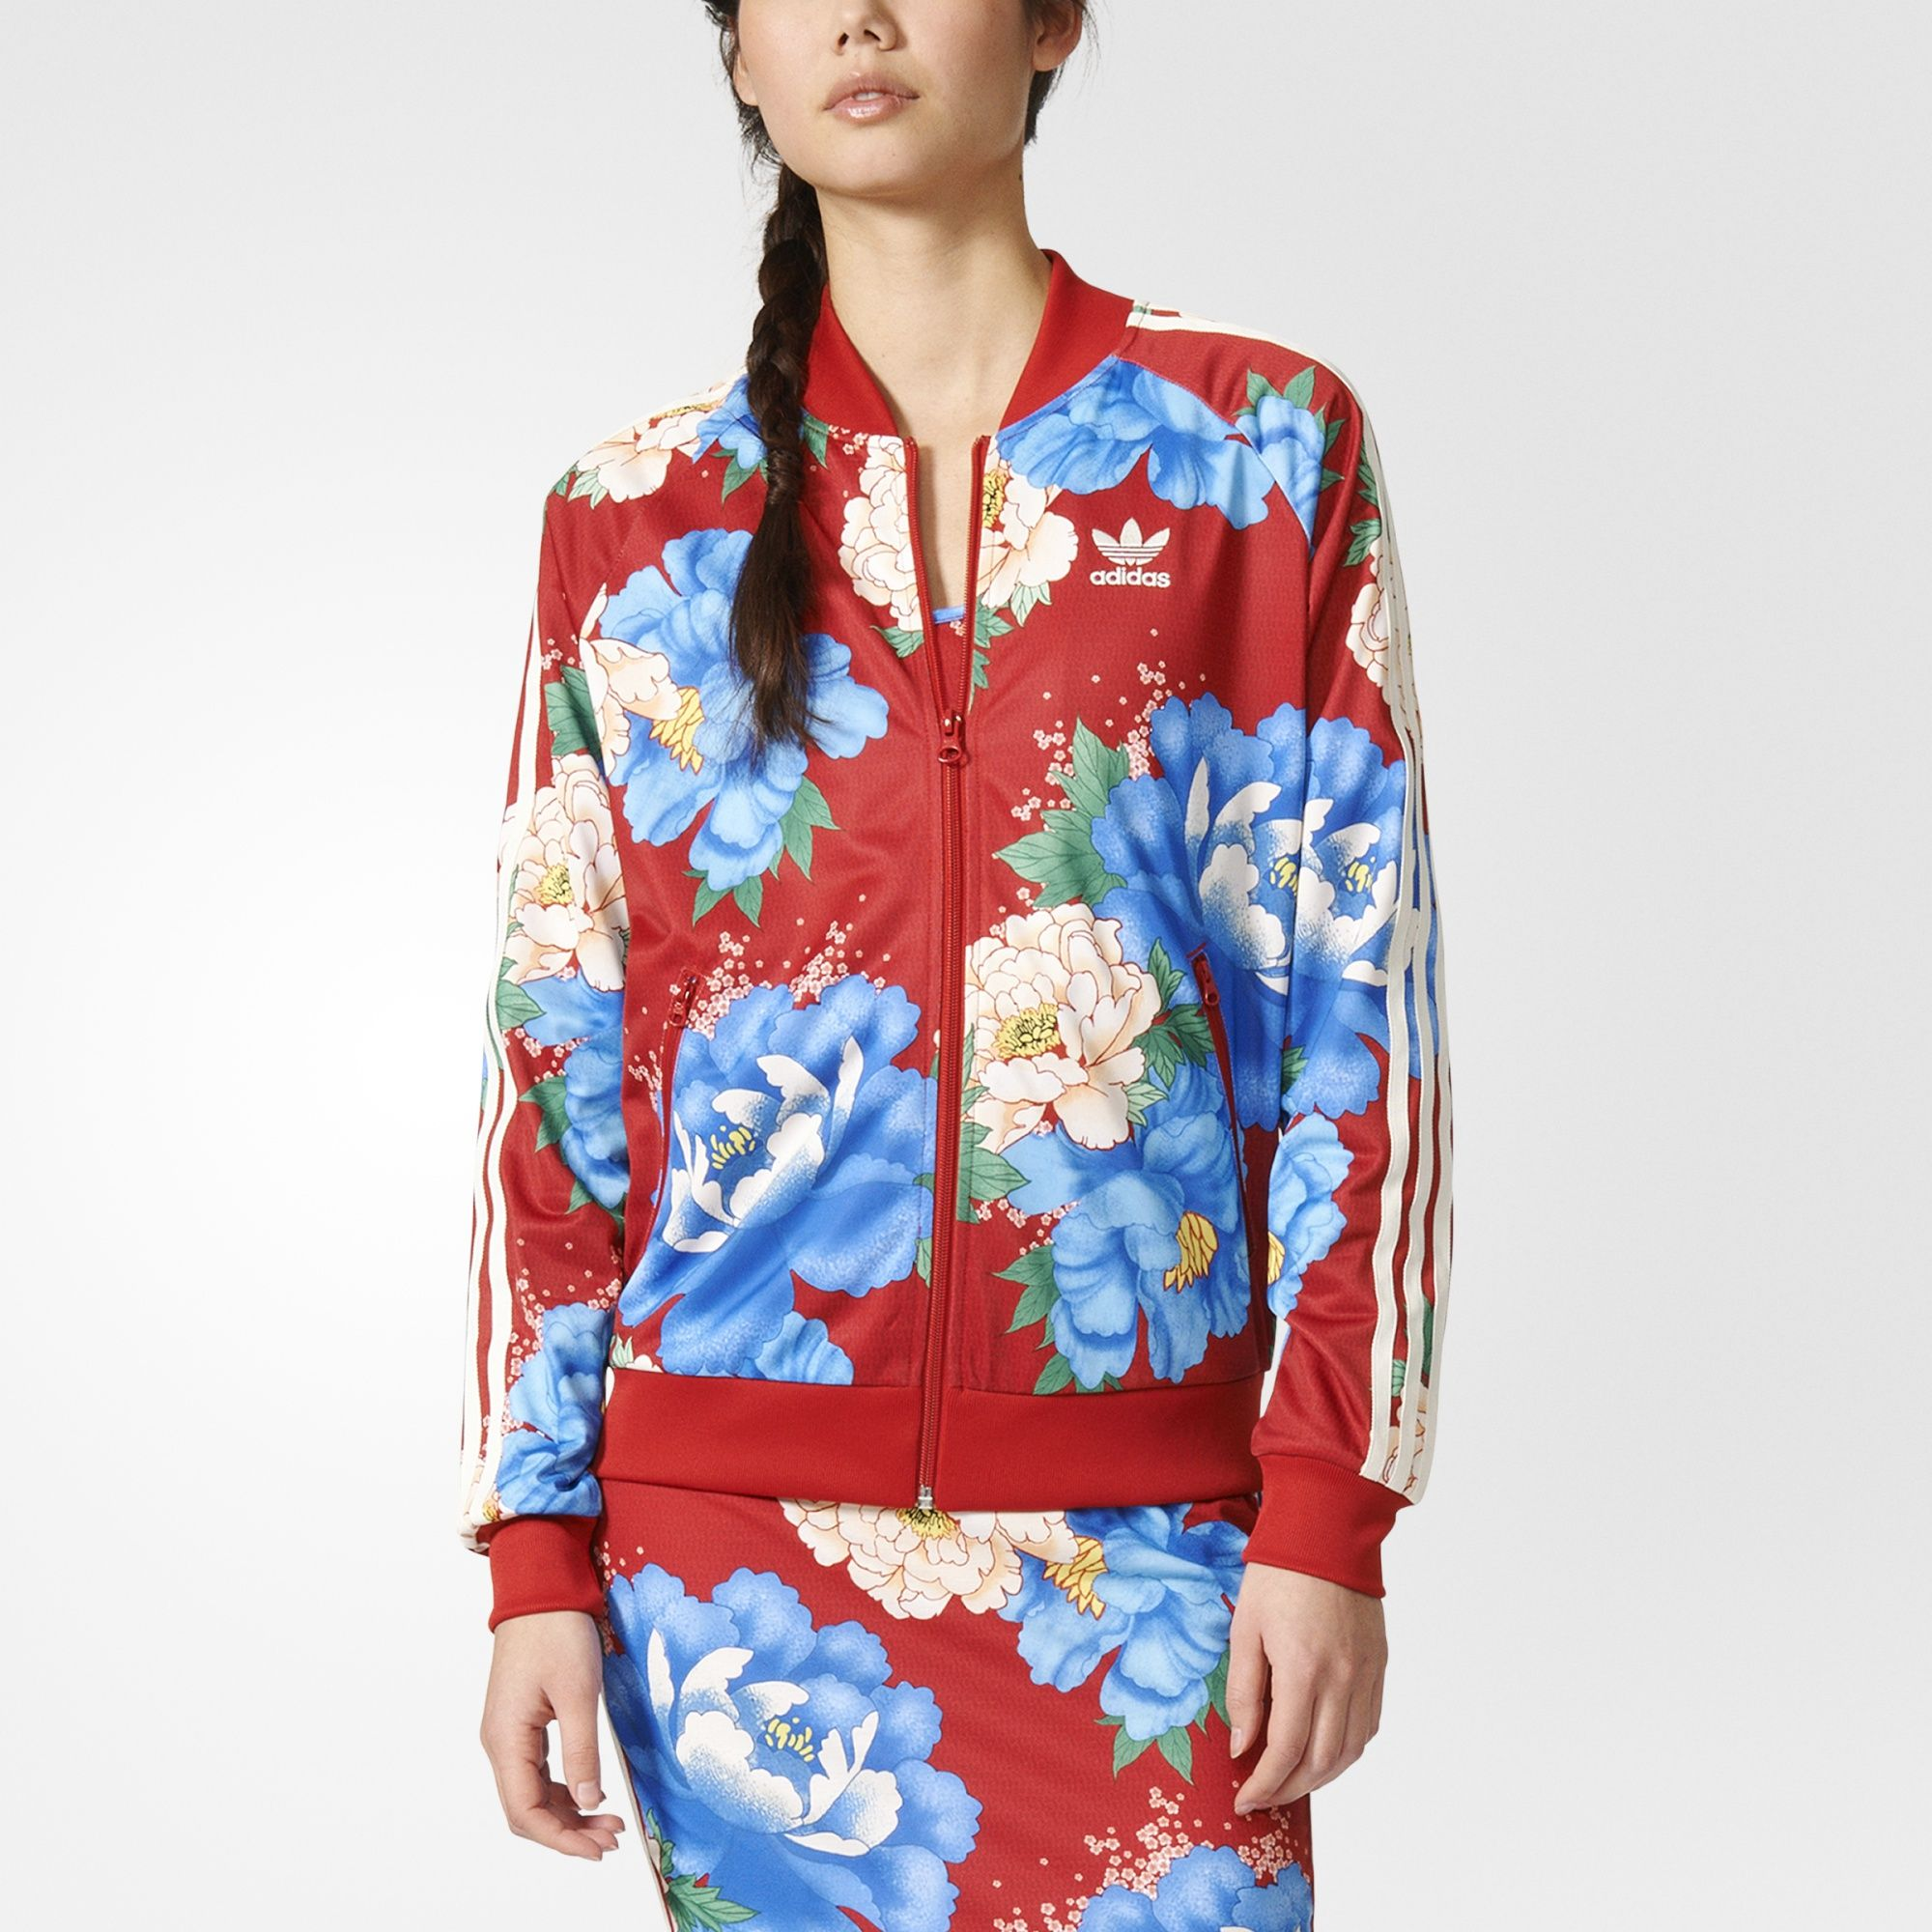 Equally Inspired By Nature Asian Art And Island Time This Collaboration With Brazilian Label The Farm Compan Adidas Track Jacket Sporty Outfits Track Jackets [ 2000 x 2000 Pixel ]